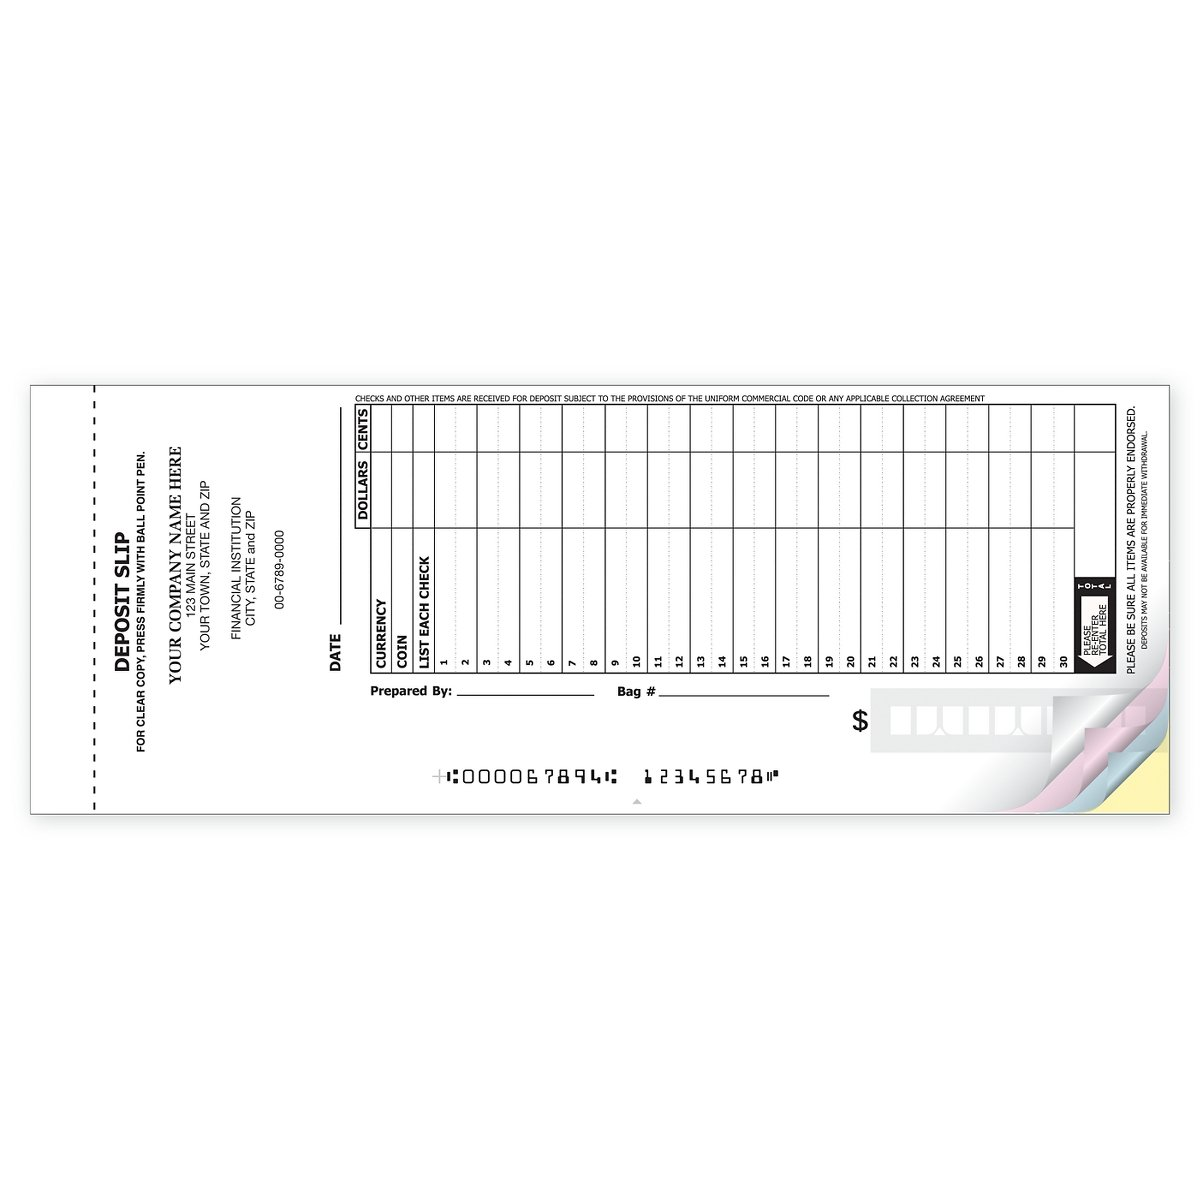 30-Line Booked Deposit Slip Books for Business (2400 qty, 2-part Duplicate) - Custom